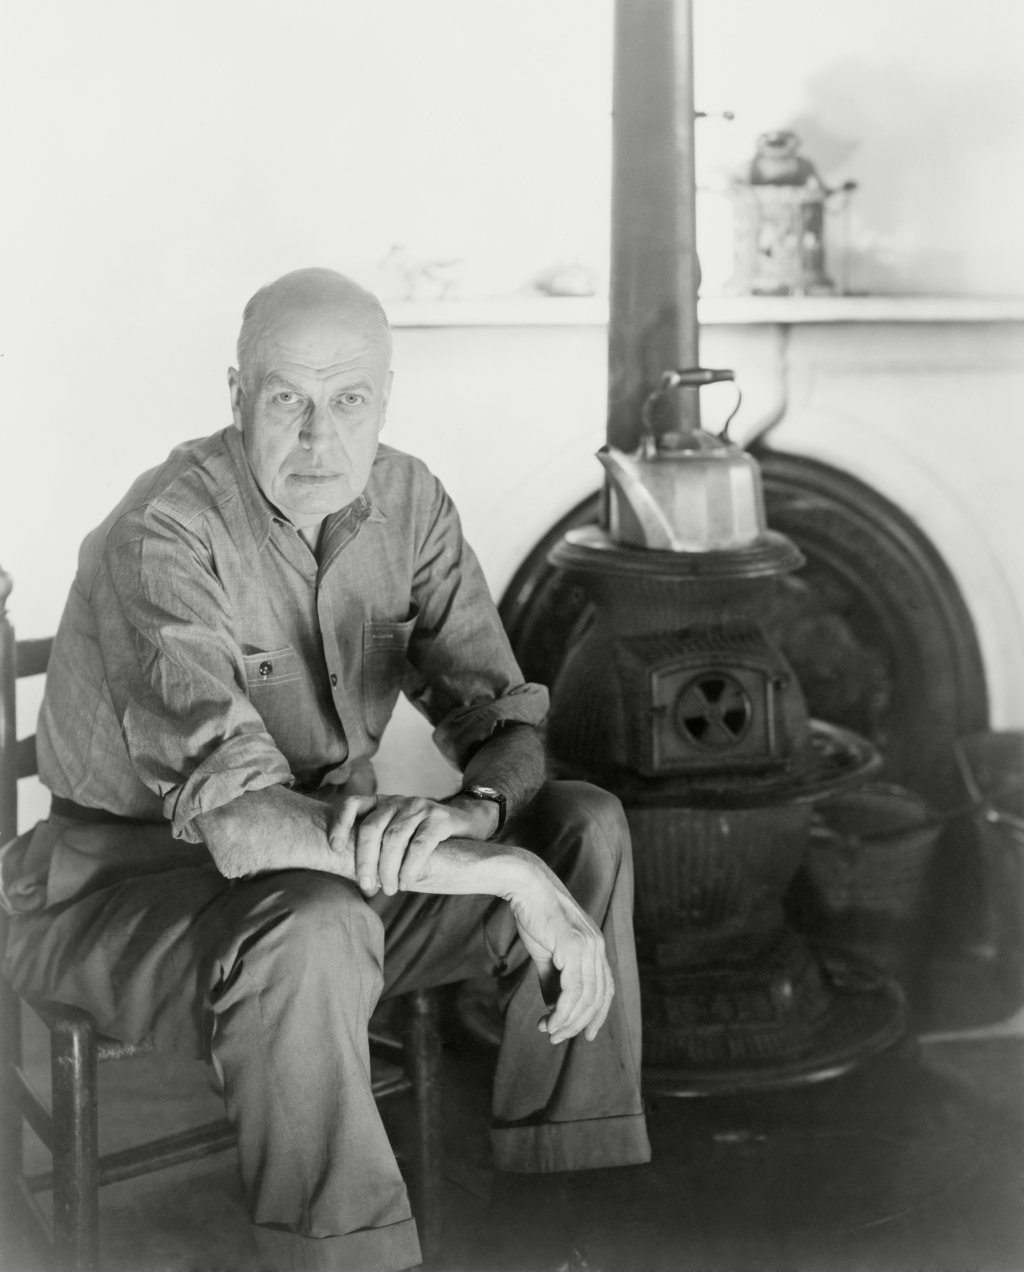 Everything You Always Wanted to Know About Edward Hopper But Were Afraid to Ask